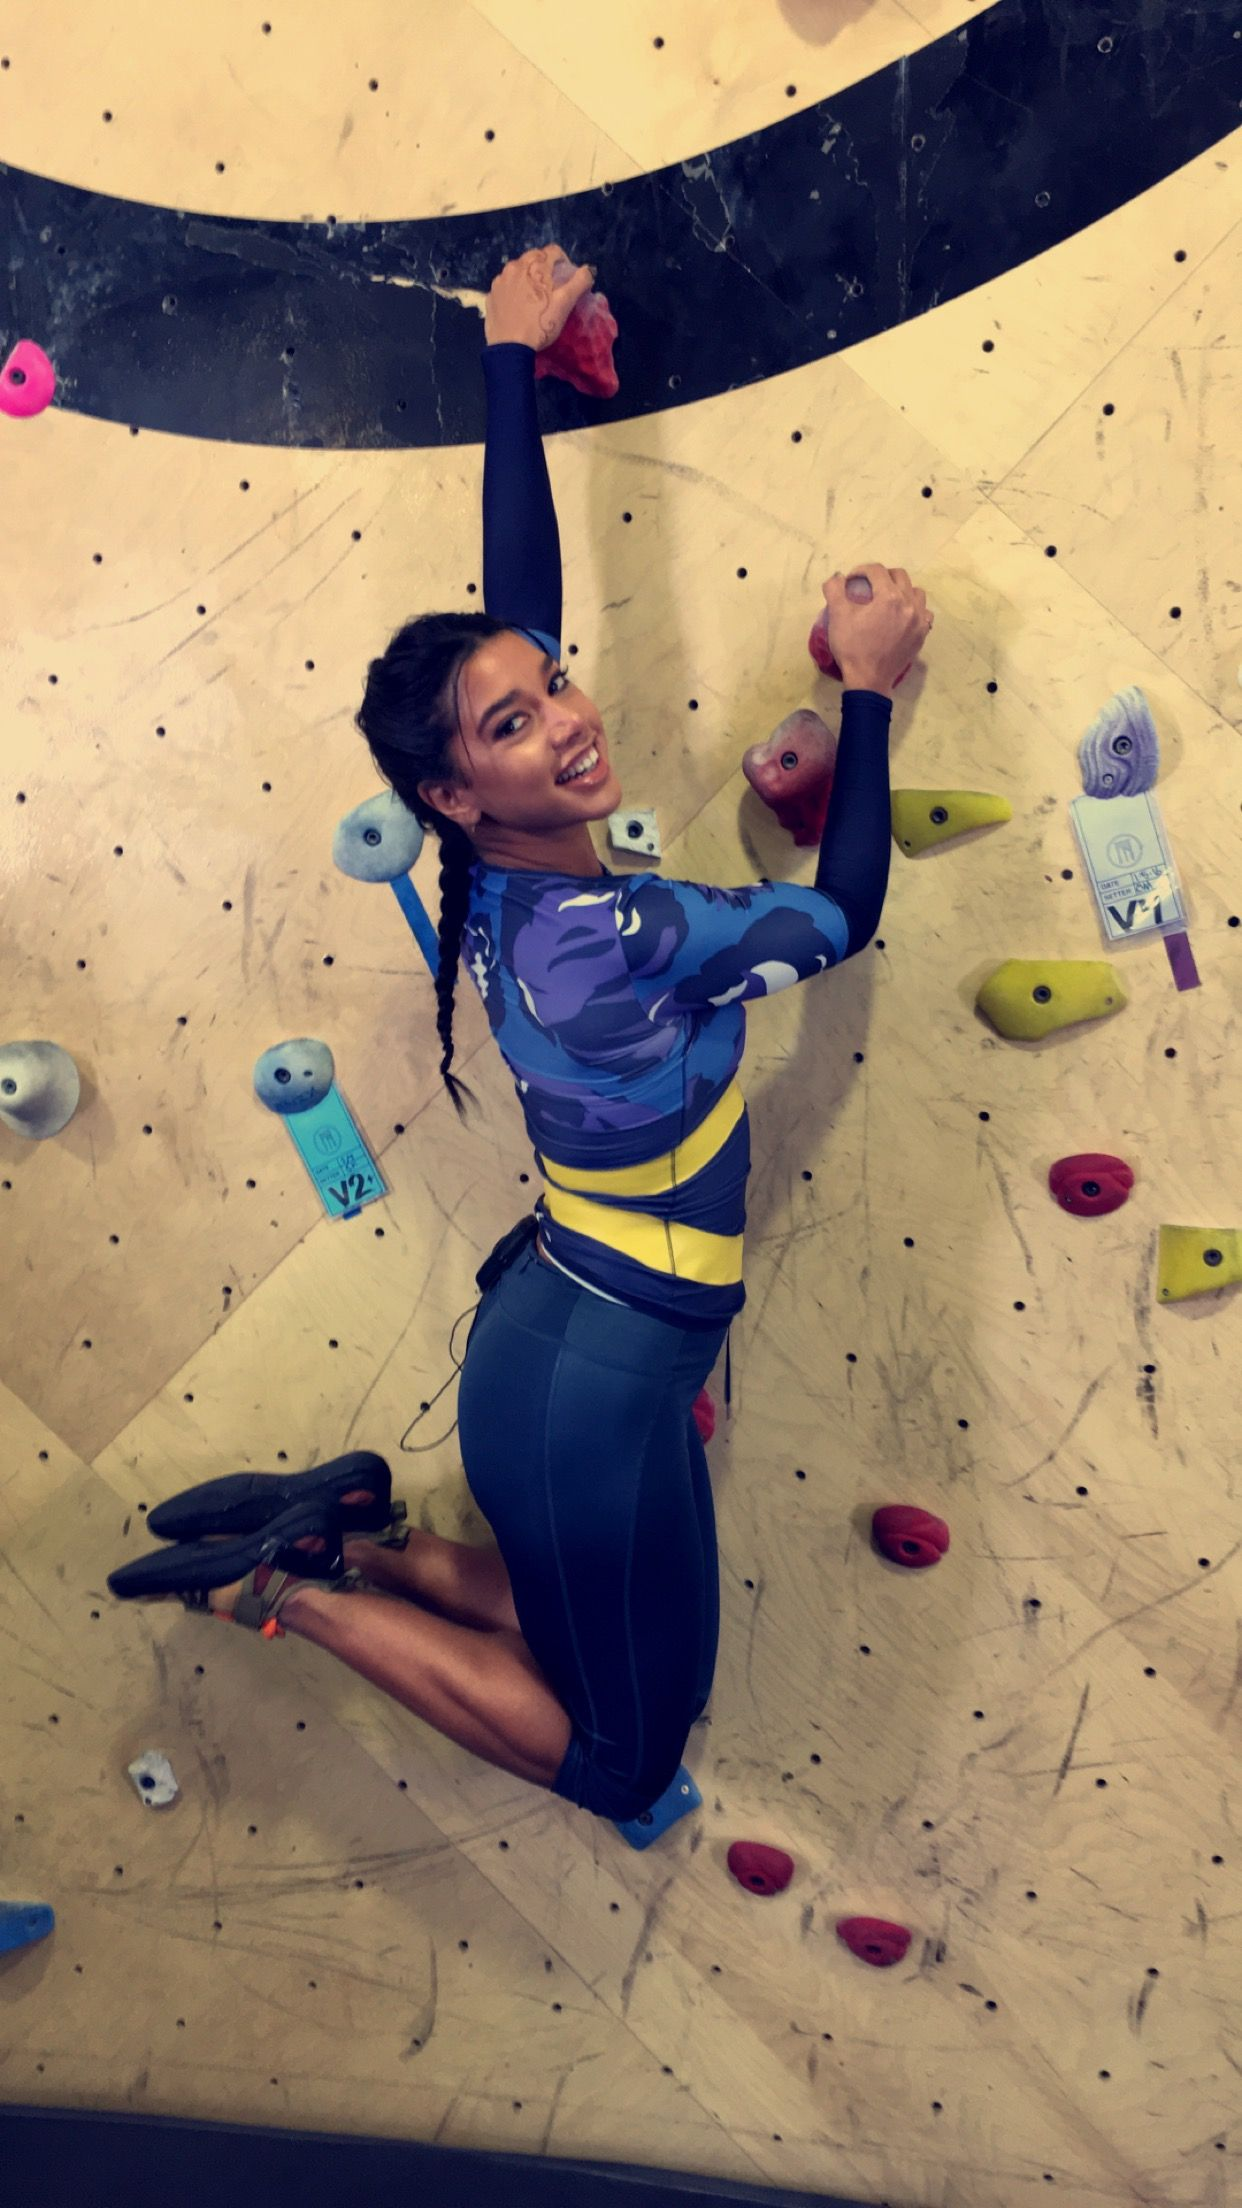 Hannah Bronfman Tries Bouldering — and We're Seriously in